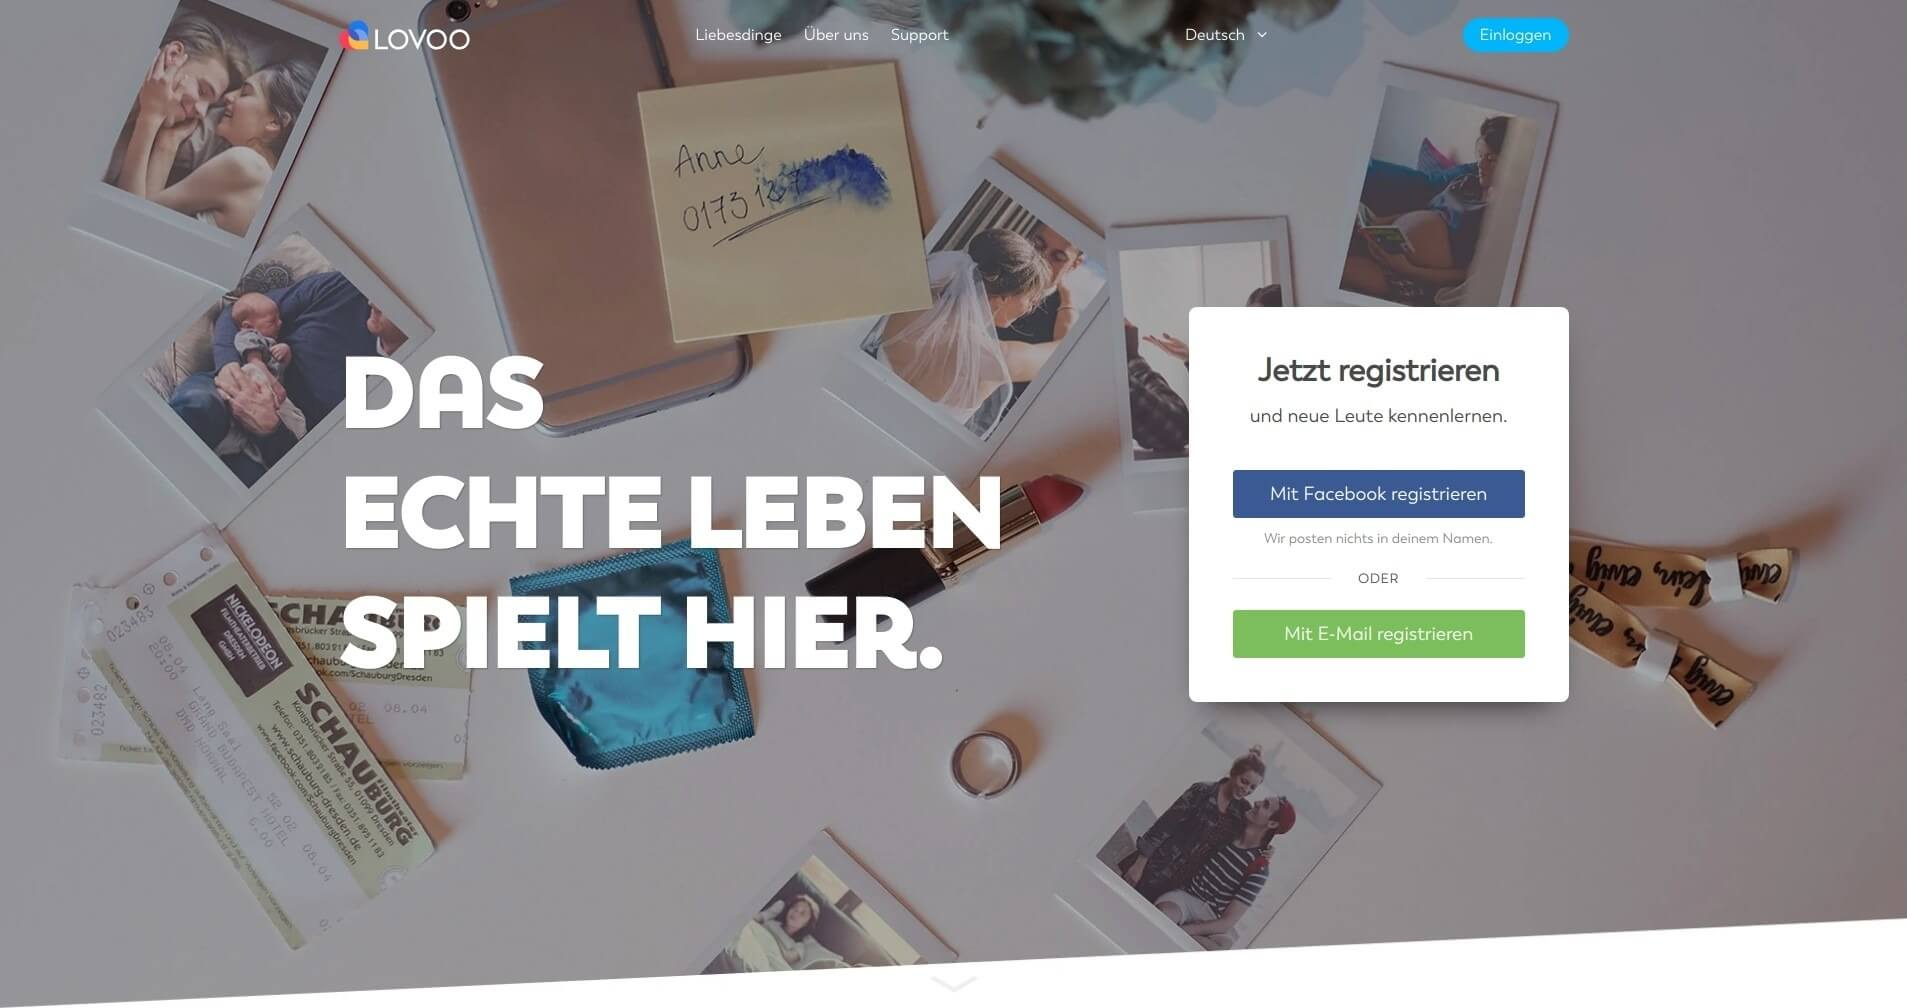 Über 50 oder 60 dating-sites